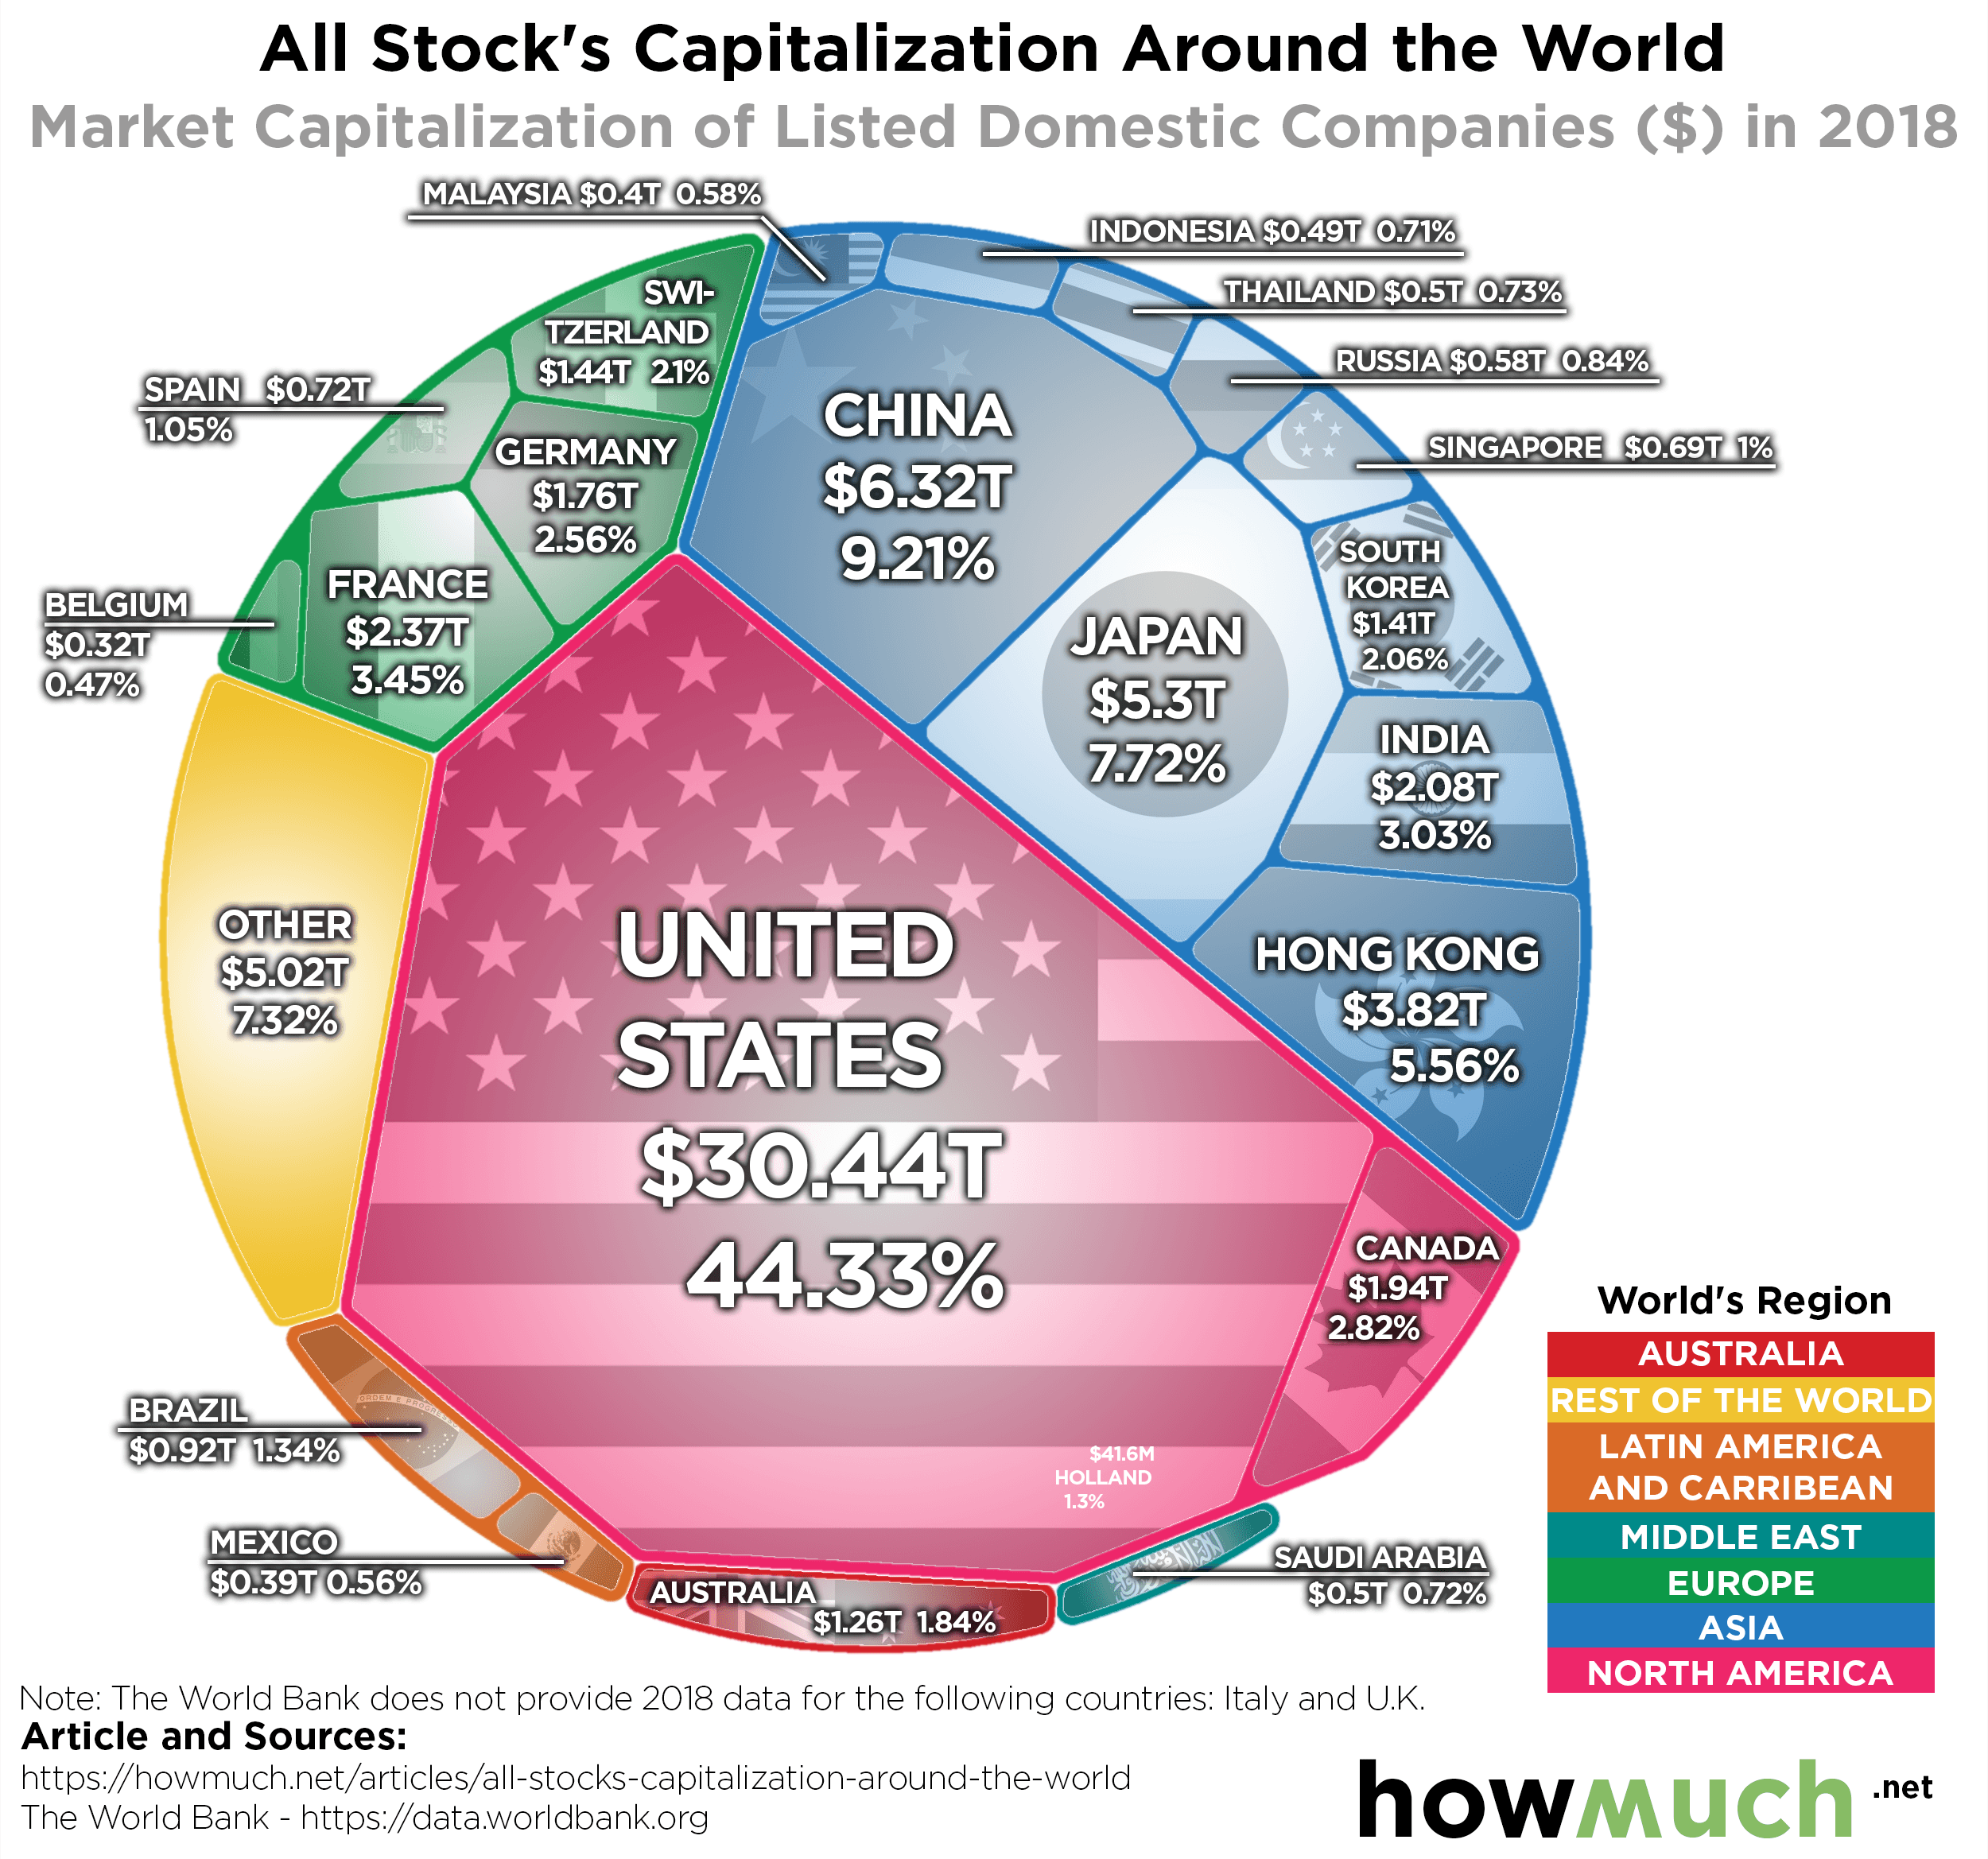 Size of U.S. Stock Market